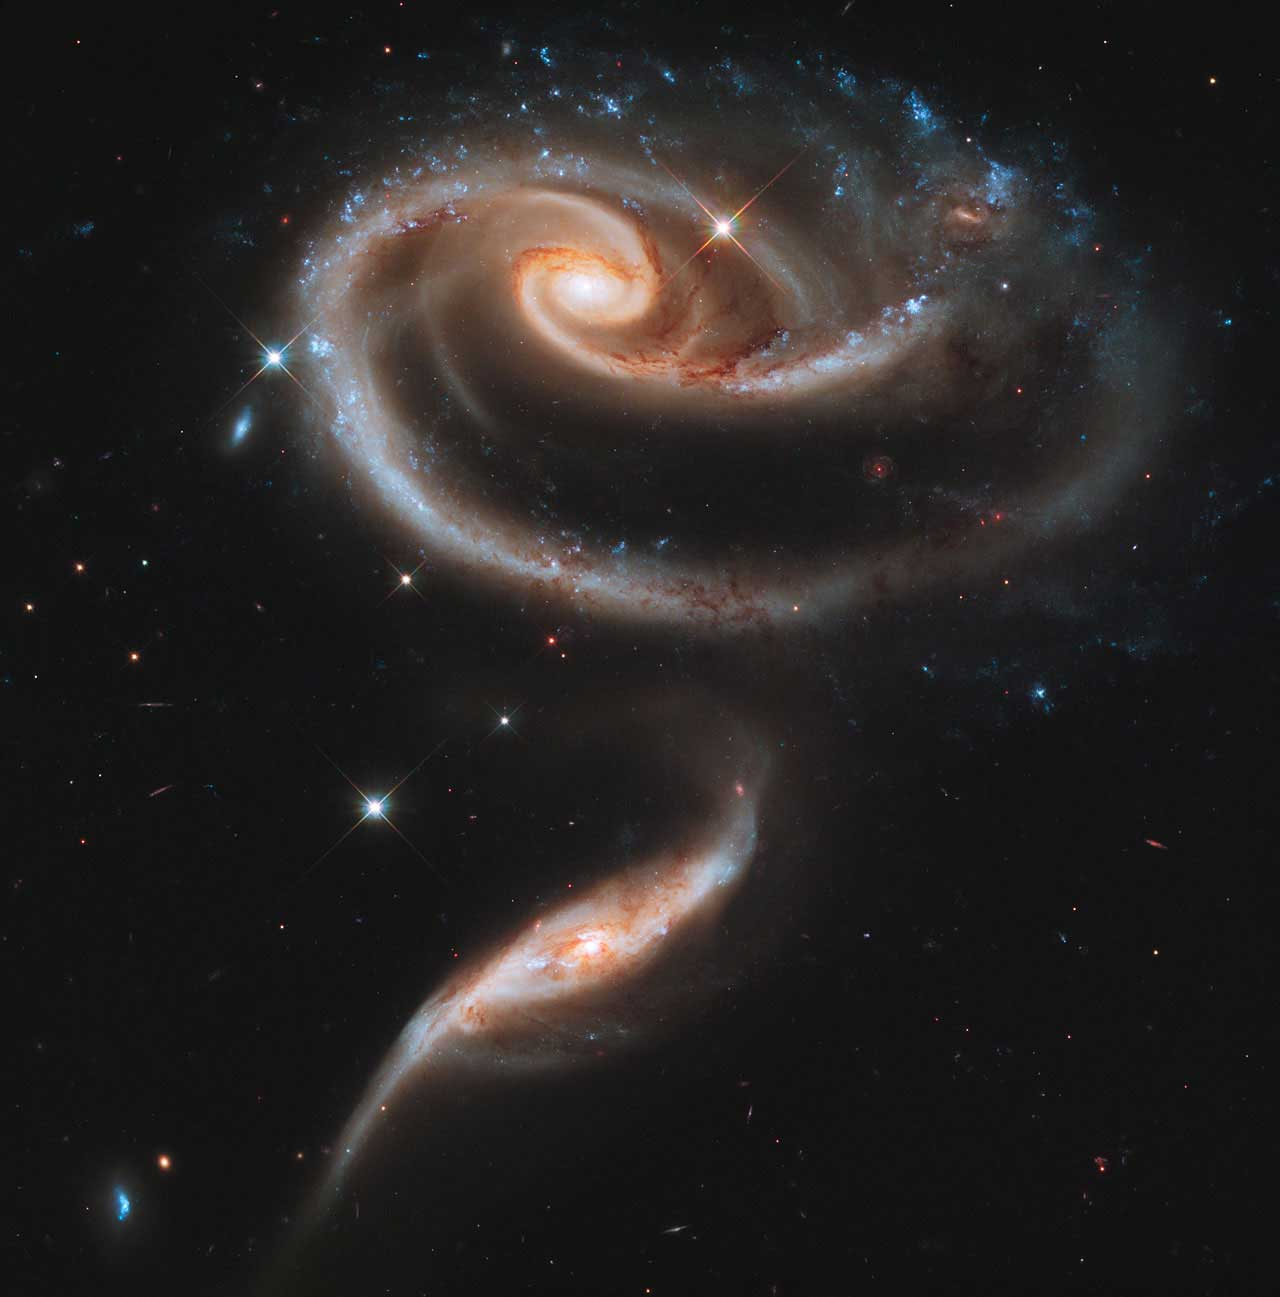 Interacting Galaxies Arp 273:                                                              A pair of interacting galaxies called Arp 273.  The distorted shape of the larger of the two galaxies shows signs of tidal interactions with the smaller of the two. It is thought that the smaller galaxy has actually passed through the larger one.                                                              Image released on April 20, 2011